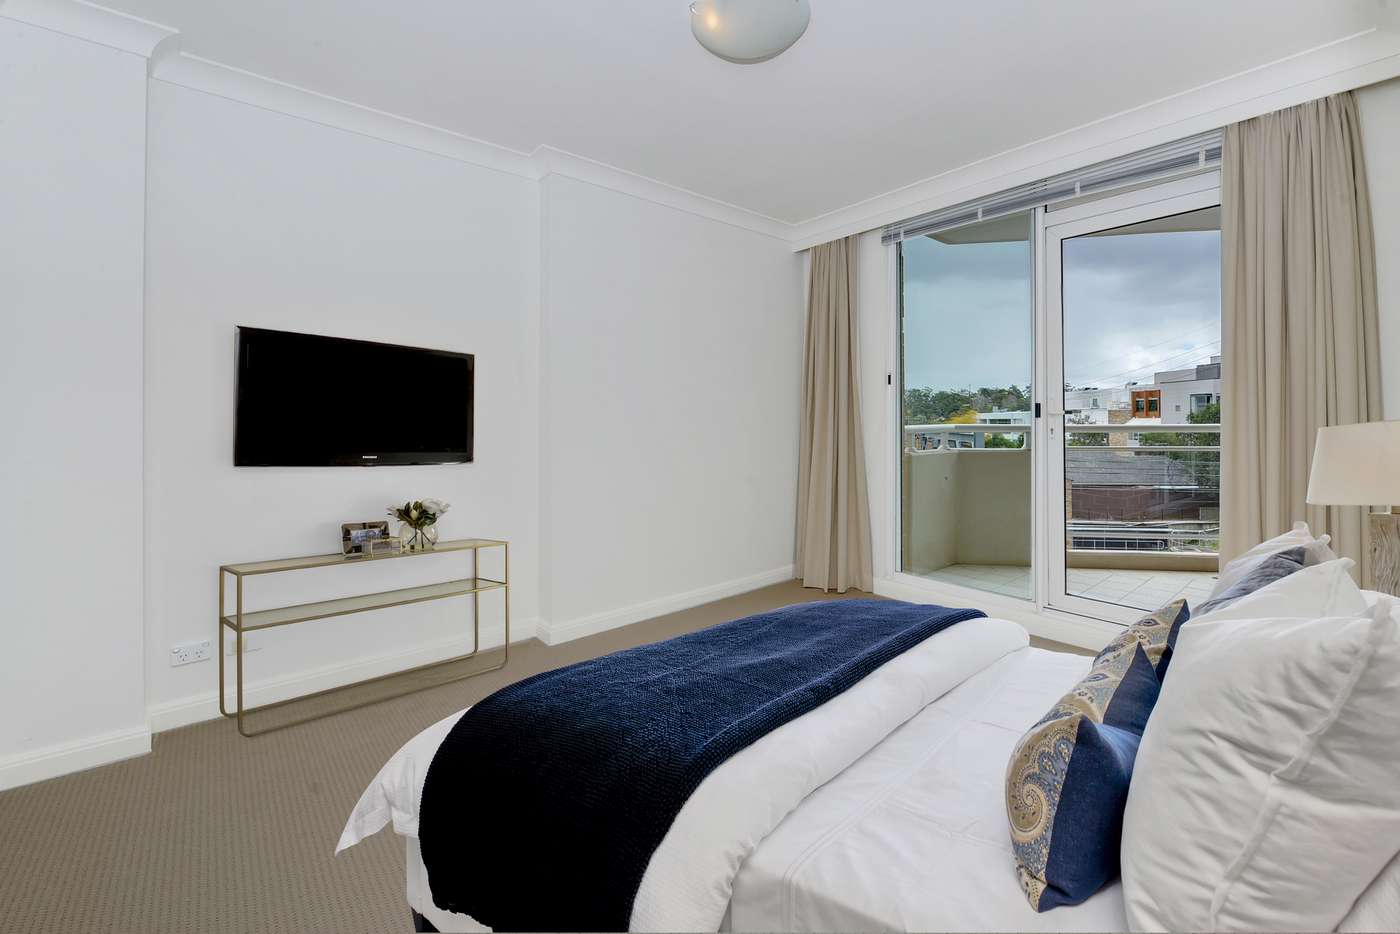 Fifth view of Homely apartment listing, 12/2 Pound Road, Hornsby NSW 2077